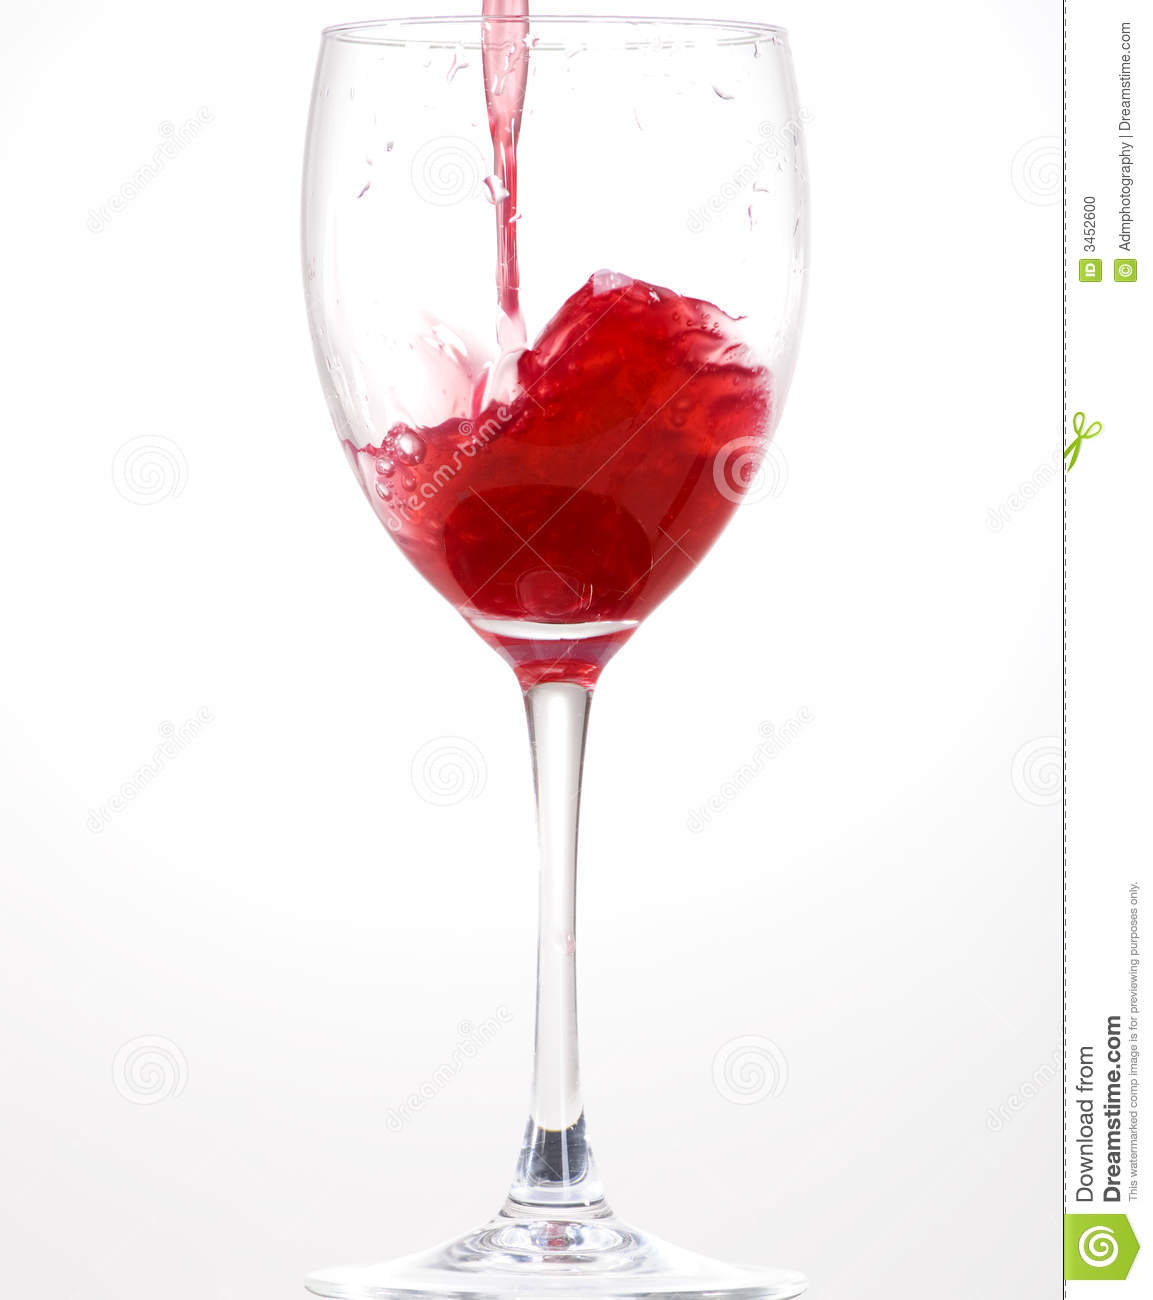 Wine Glass 1 Stock Photo Image 3452600